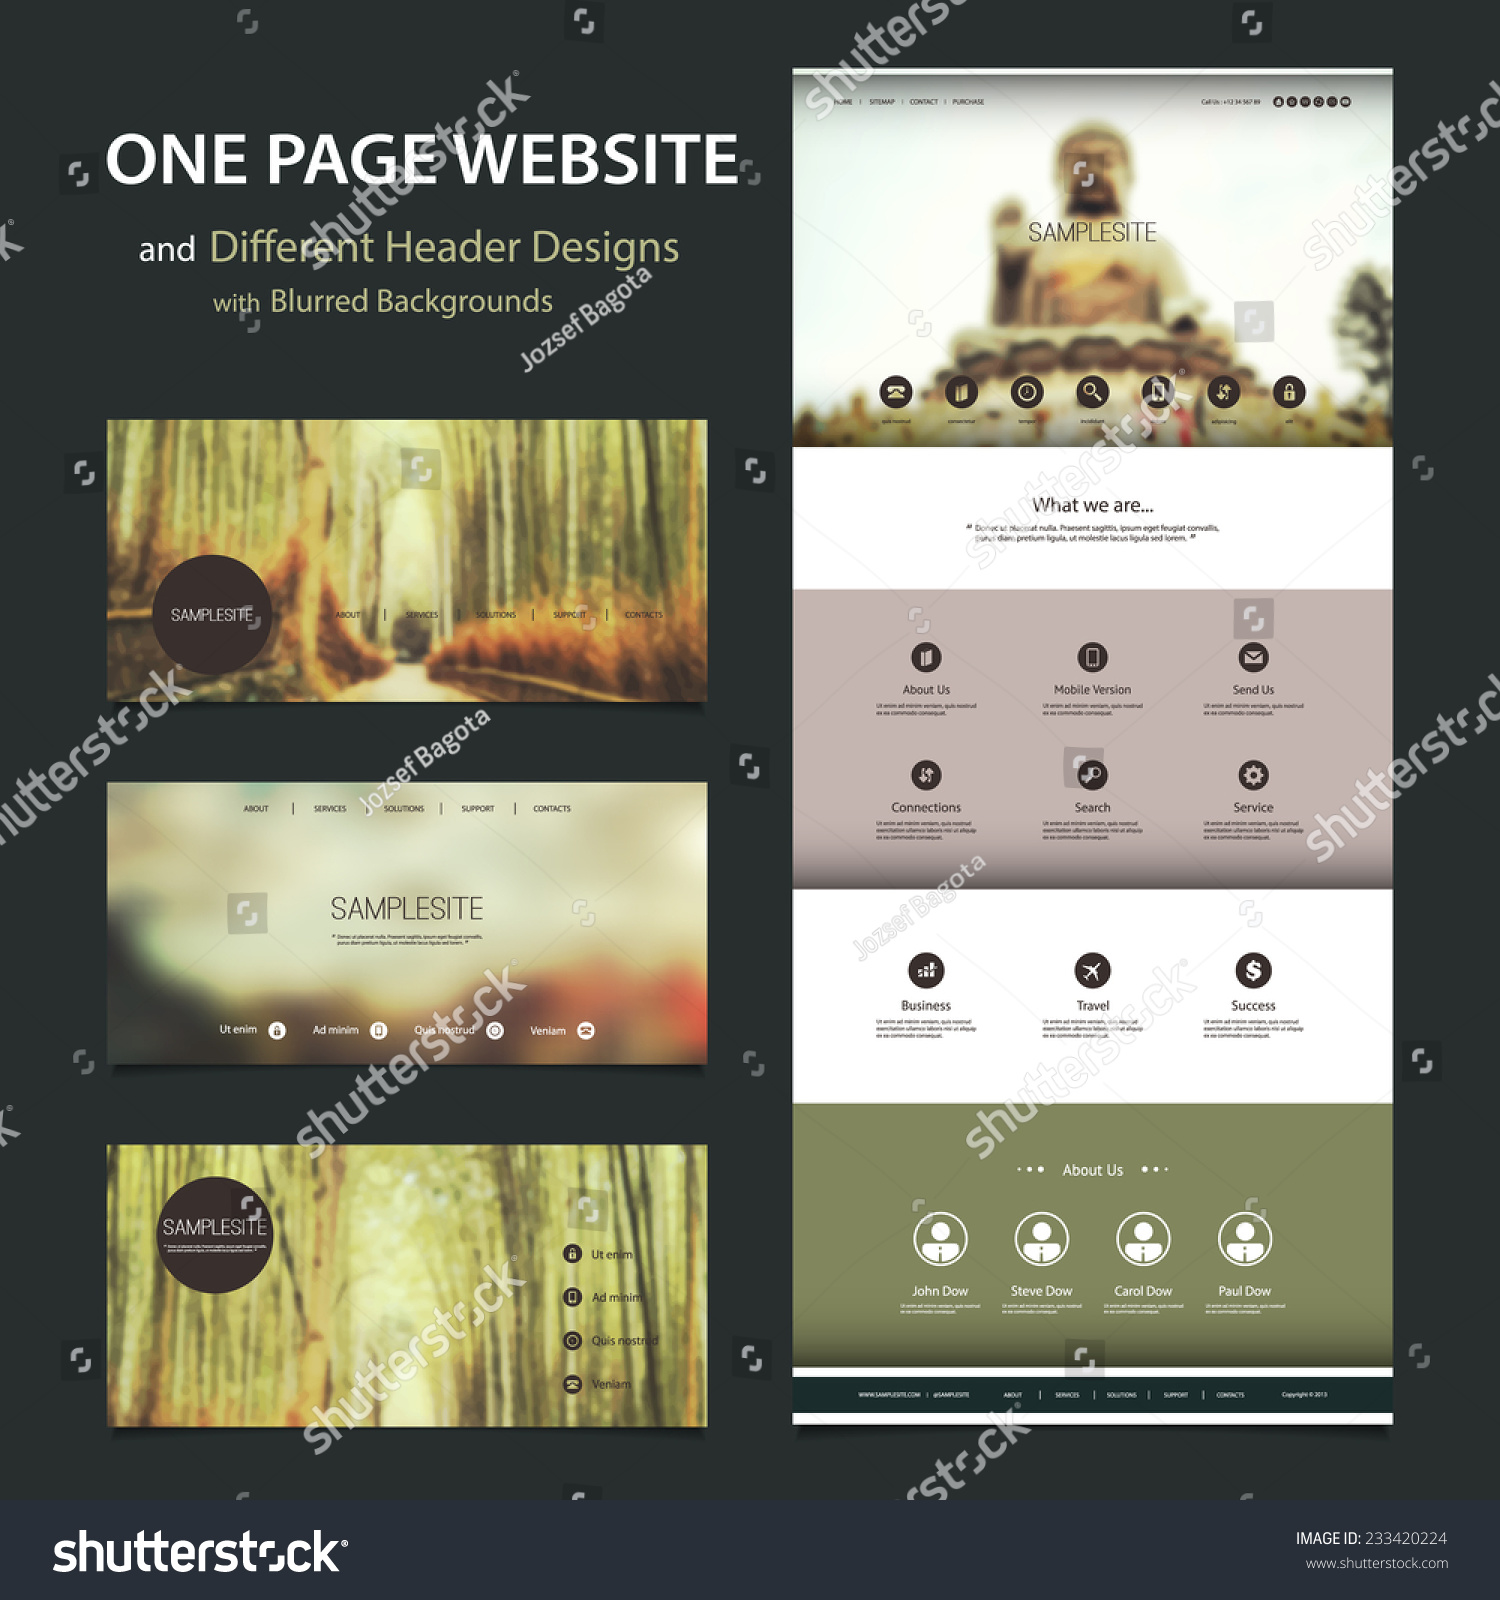 One Page Website Template: One Page Website Template And Different Header Designs